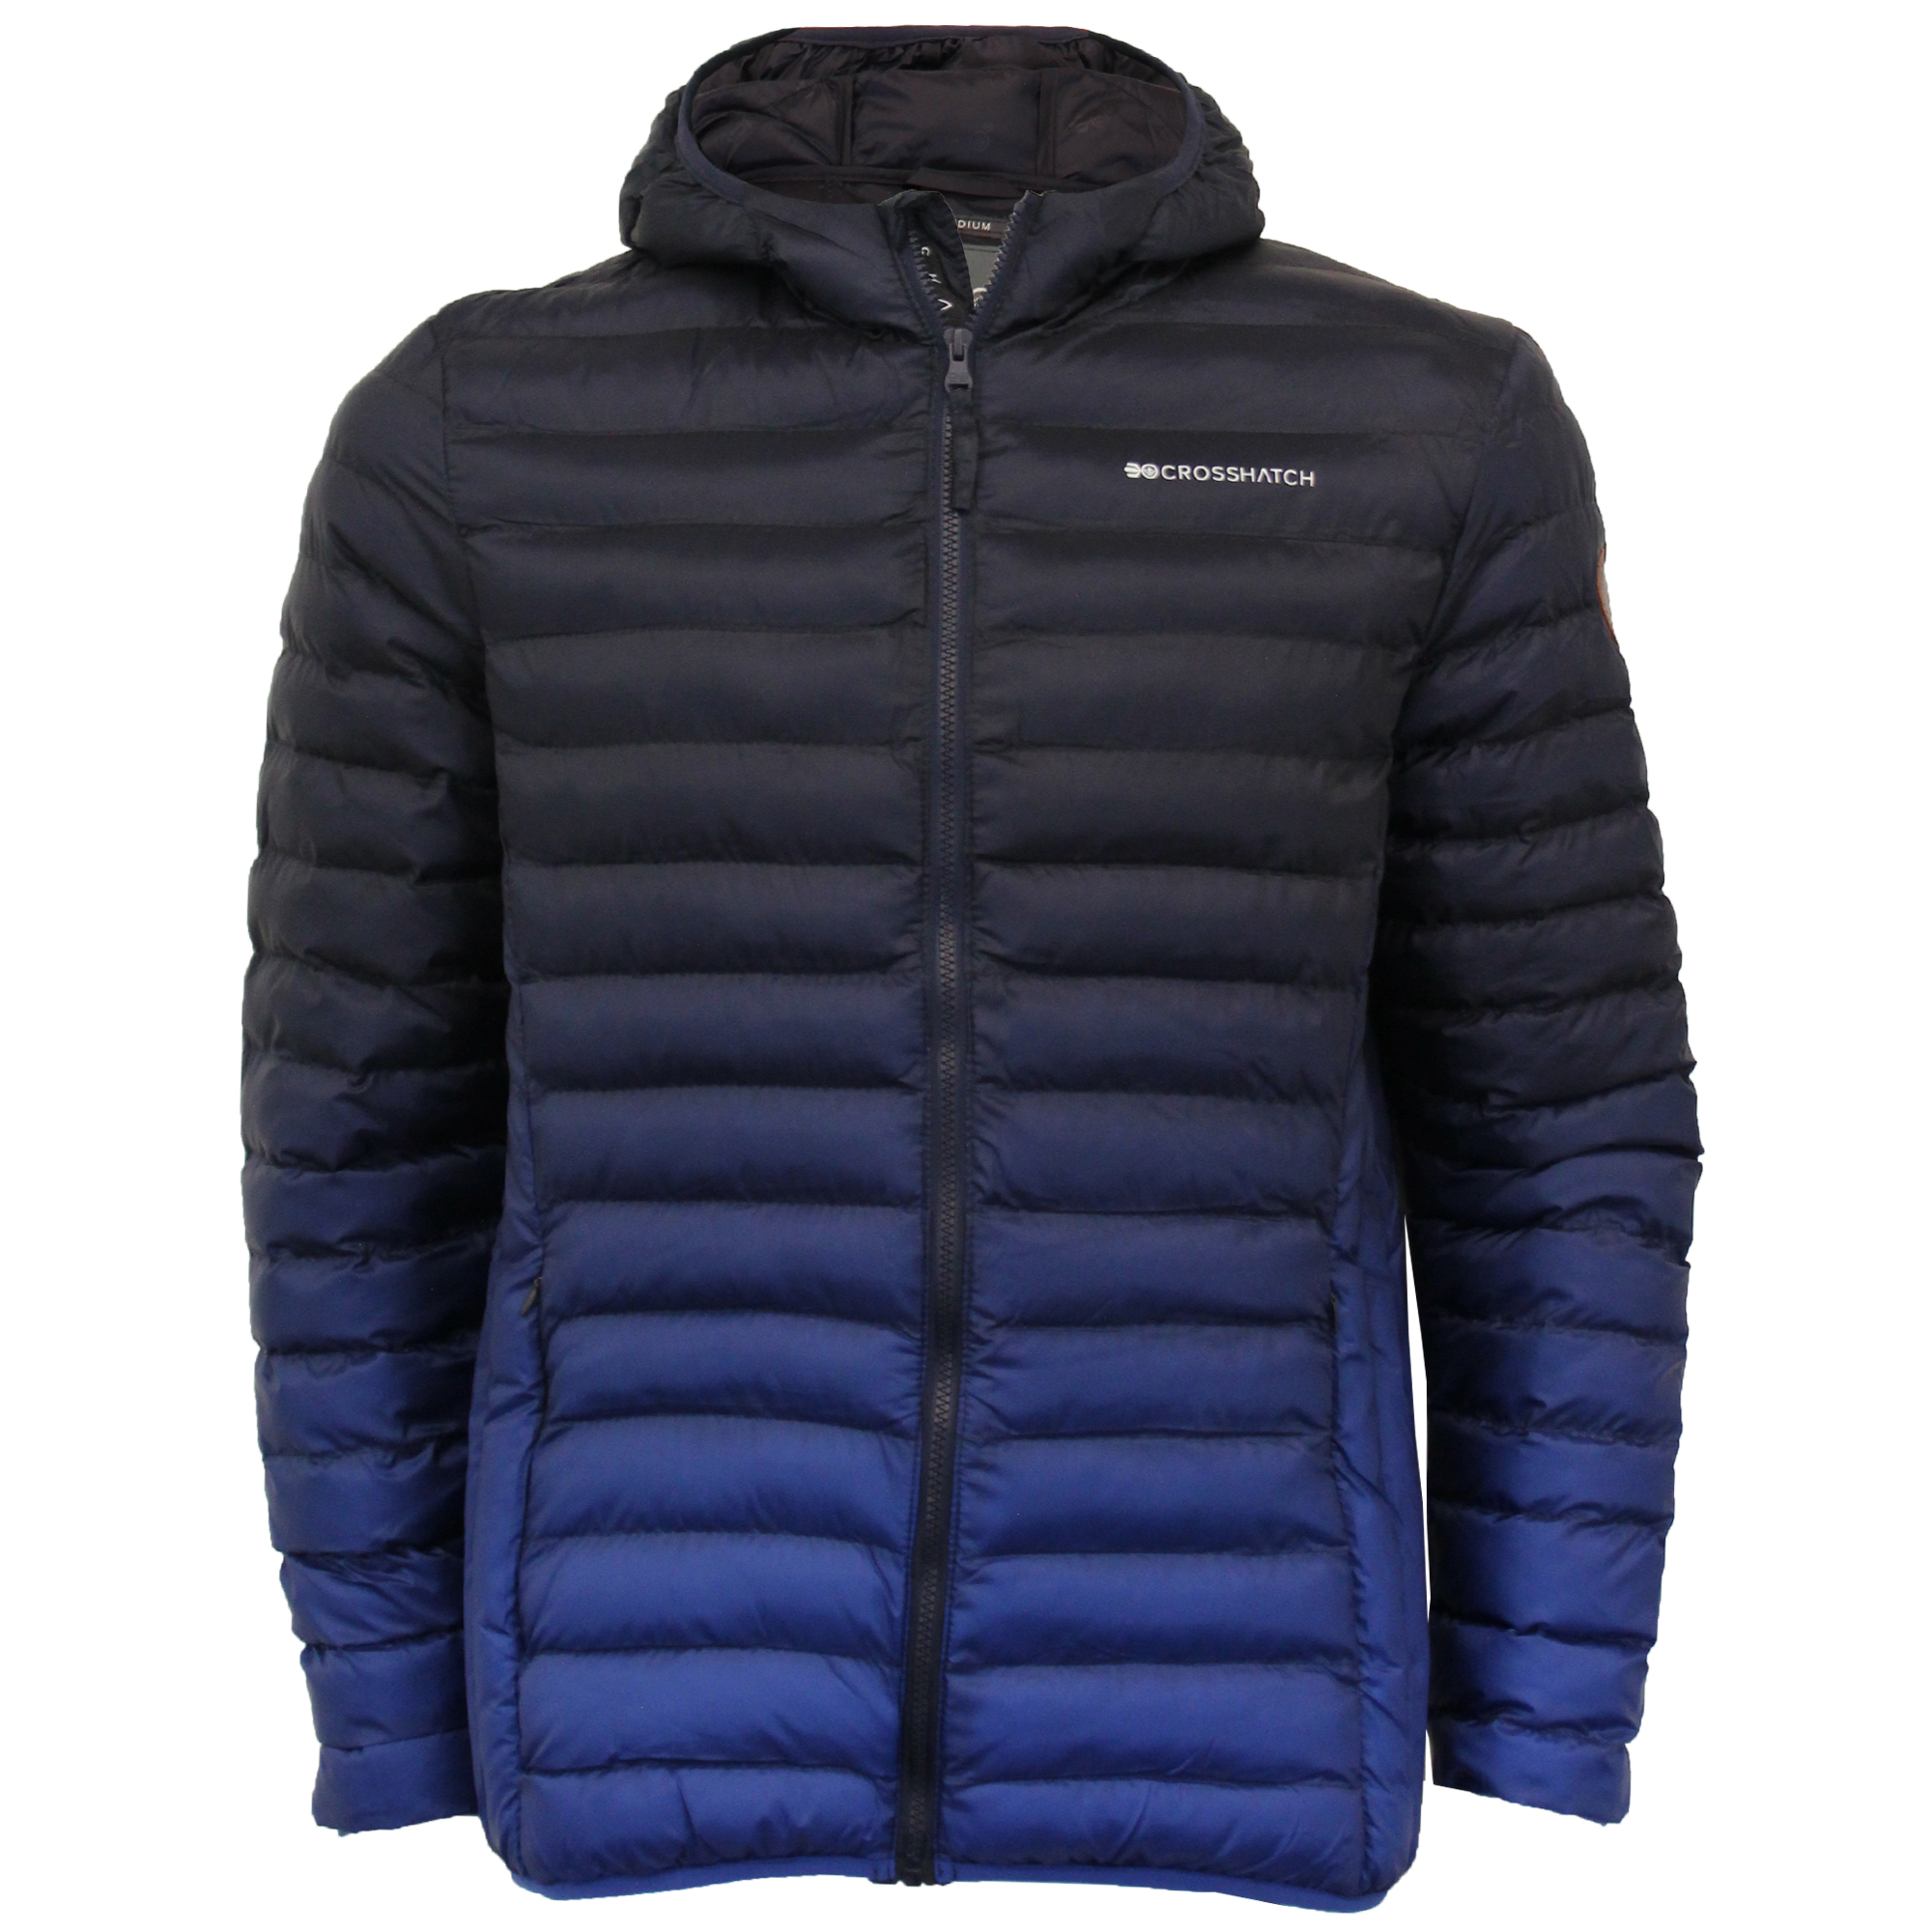 Mens-Jacket-Crosshatch-Hooded-Padded-Quilted-Two-Tone-FADEDOWN-Lined-Winter-New thumbnail 19